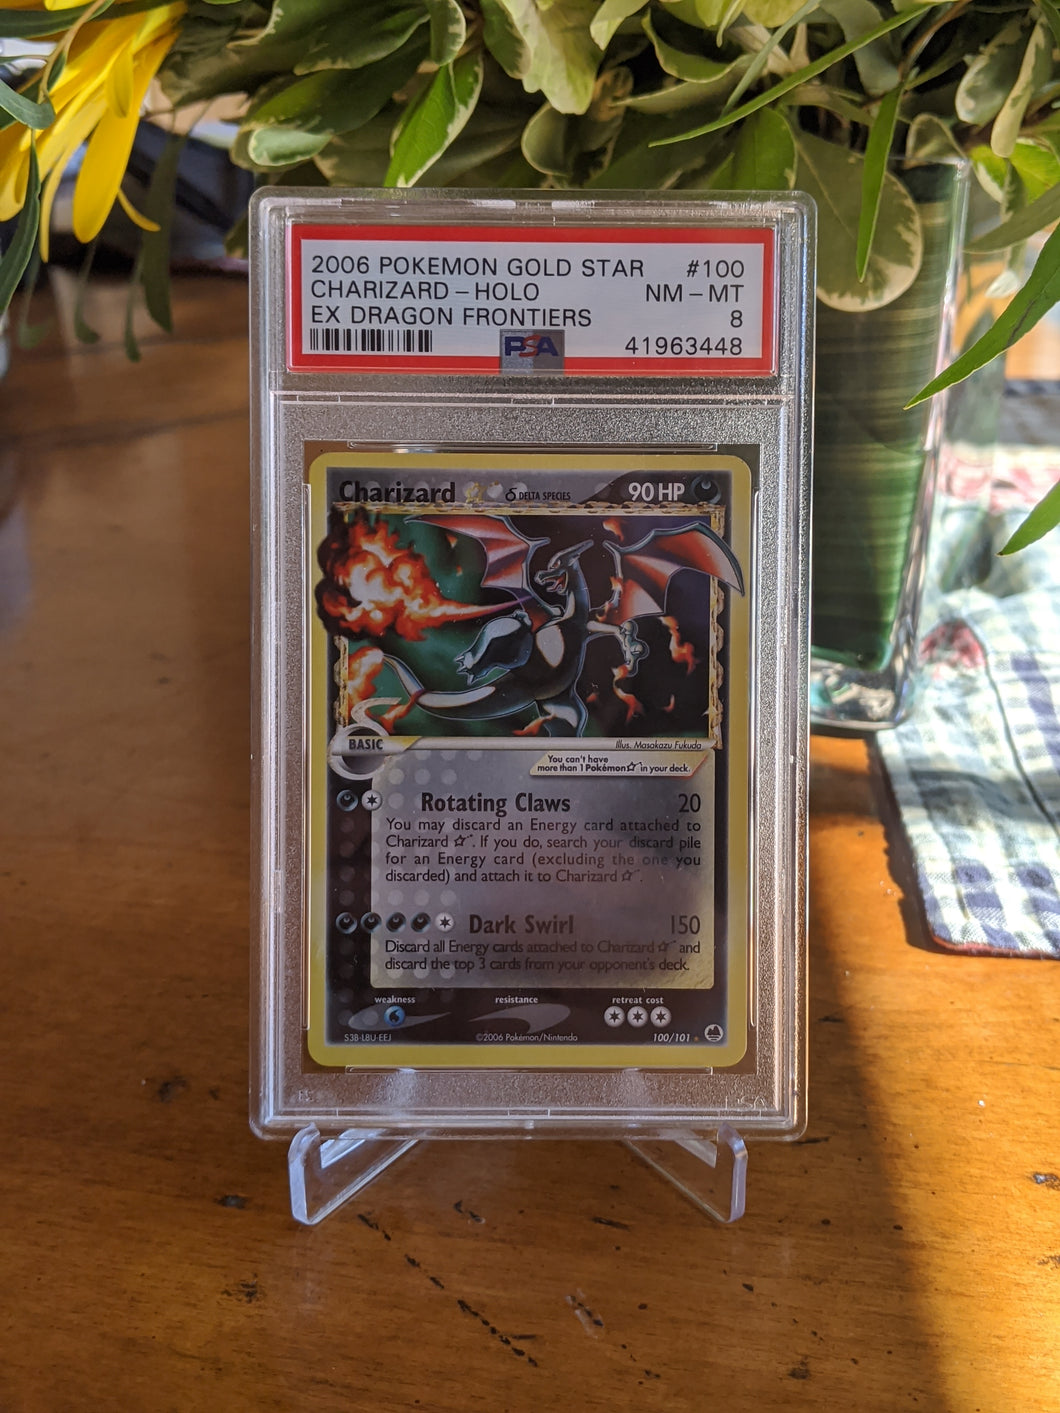 EX Dragon Frontiers Gold Star Charizard PSA 8